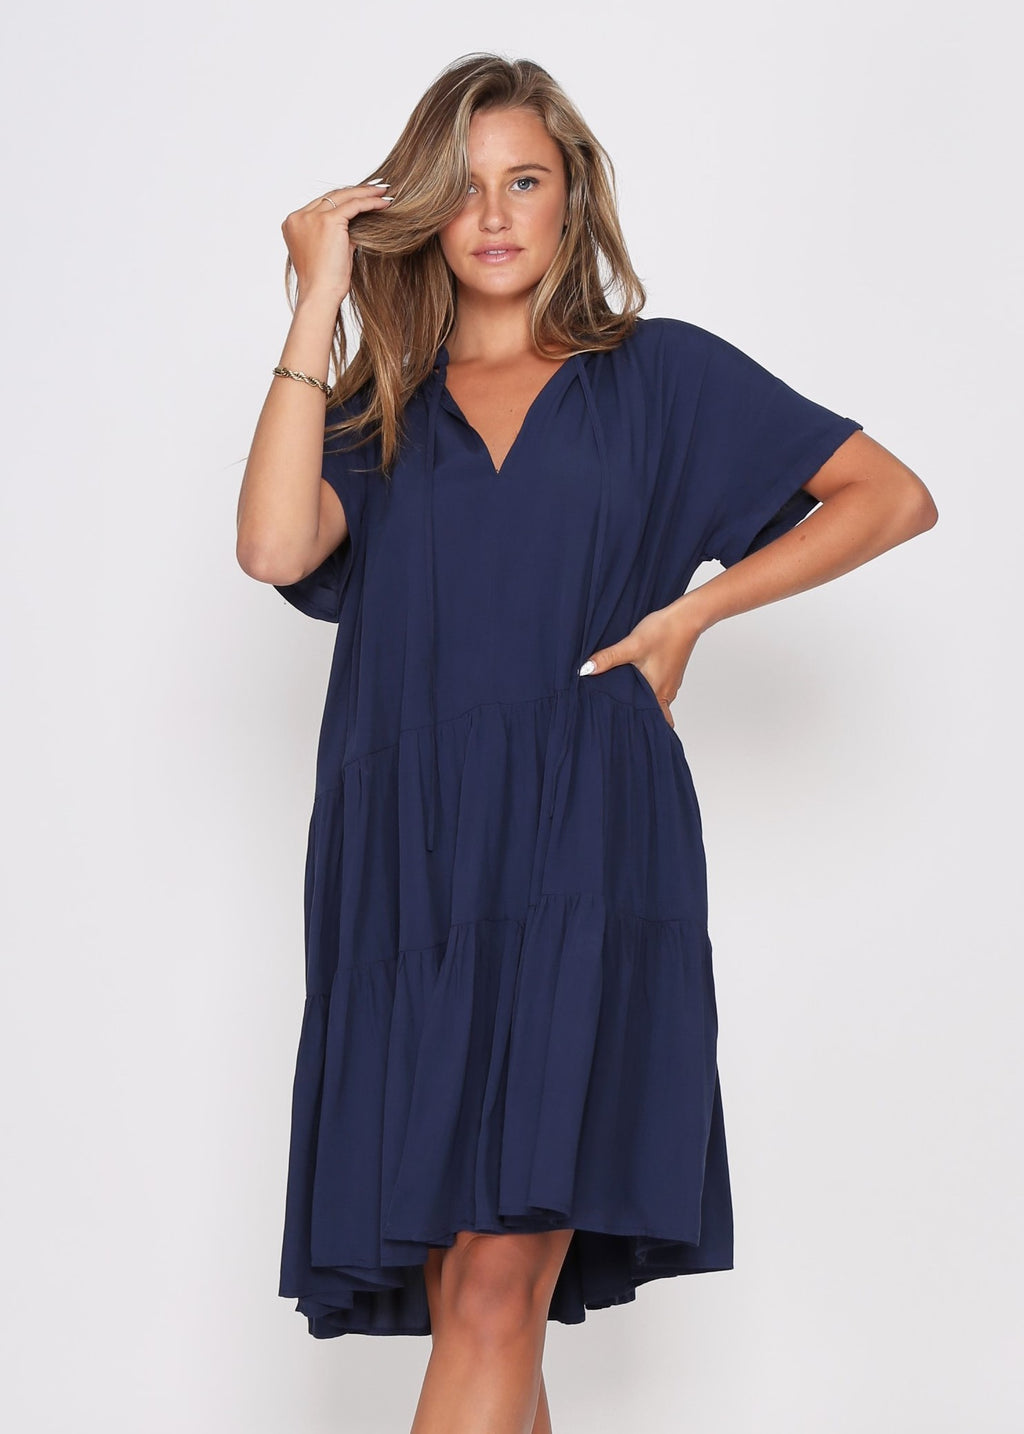 NEW - KARA DRESS - NAVY